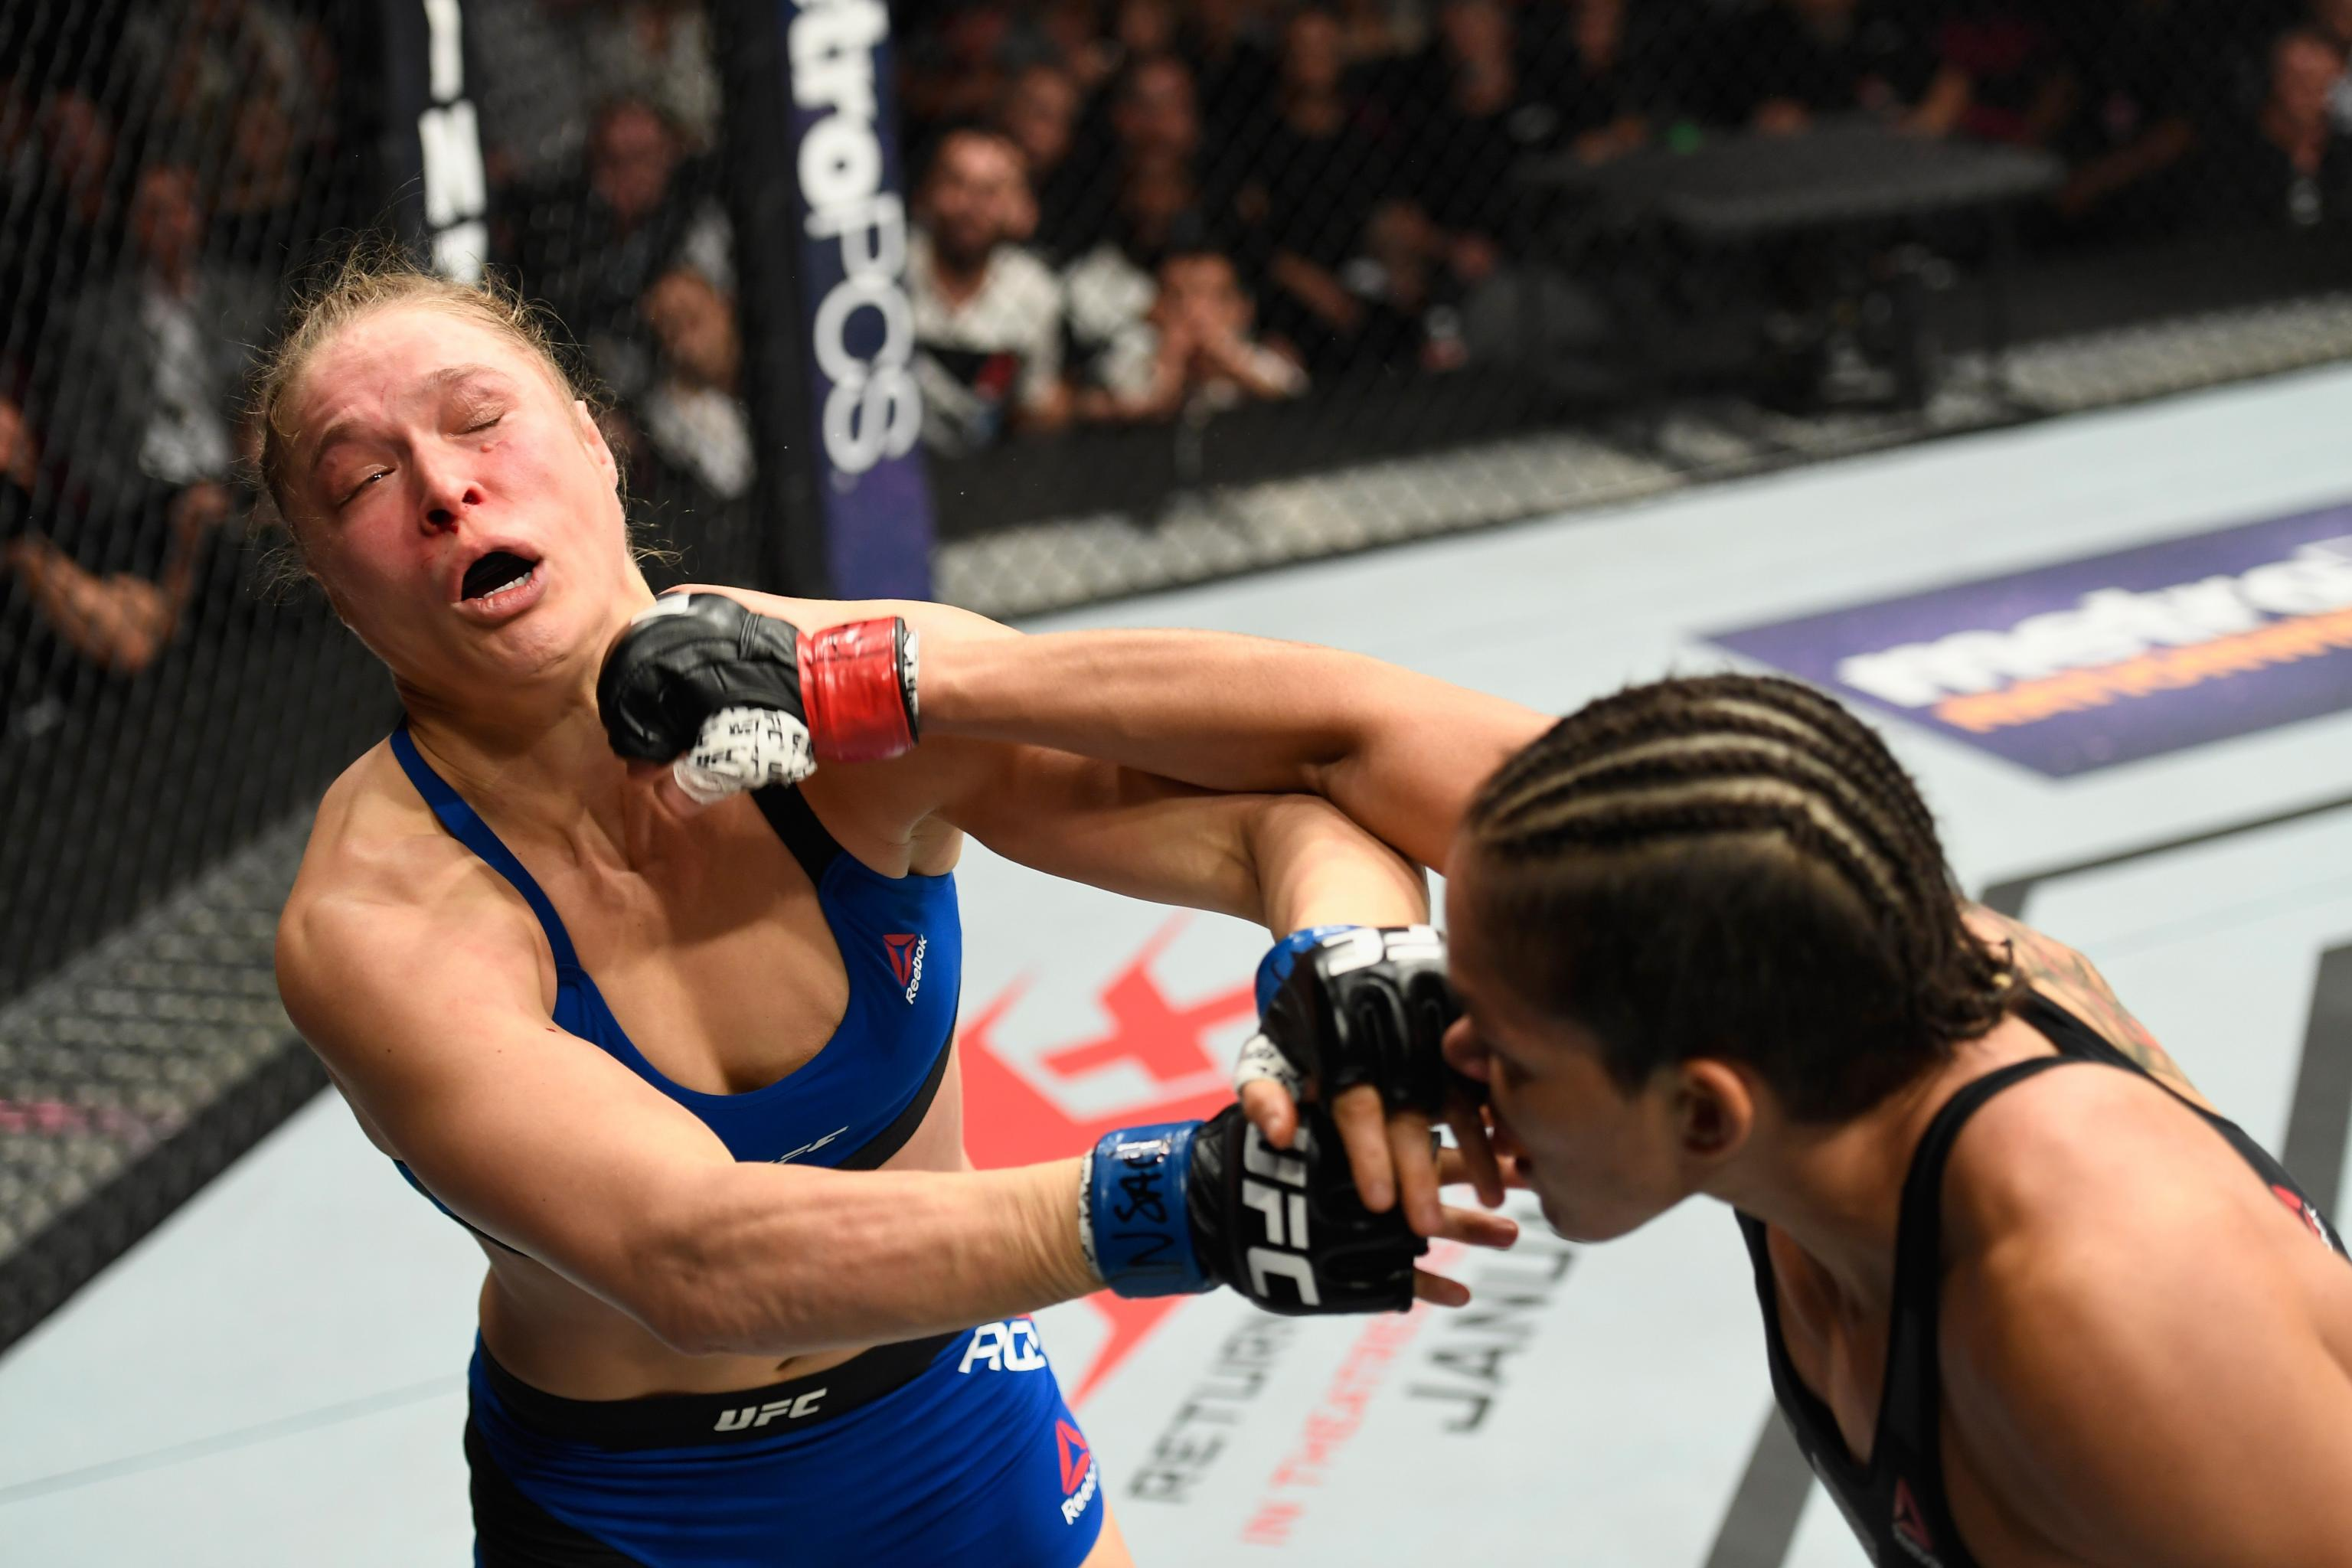 Ronda Rousey S Disappearing Act May Be For Good After 2nd Straight Loss Bleacher Report Latest News Videos And Highlights